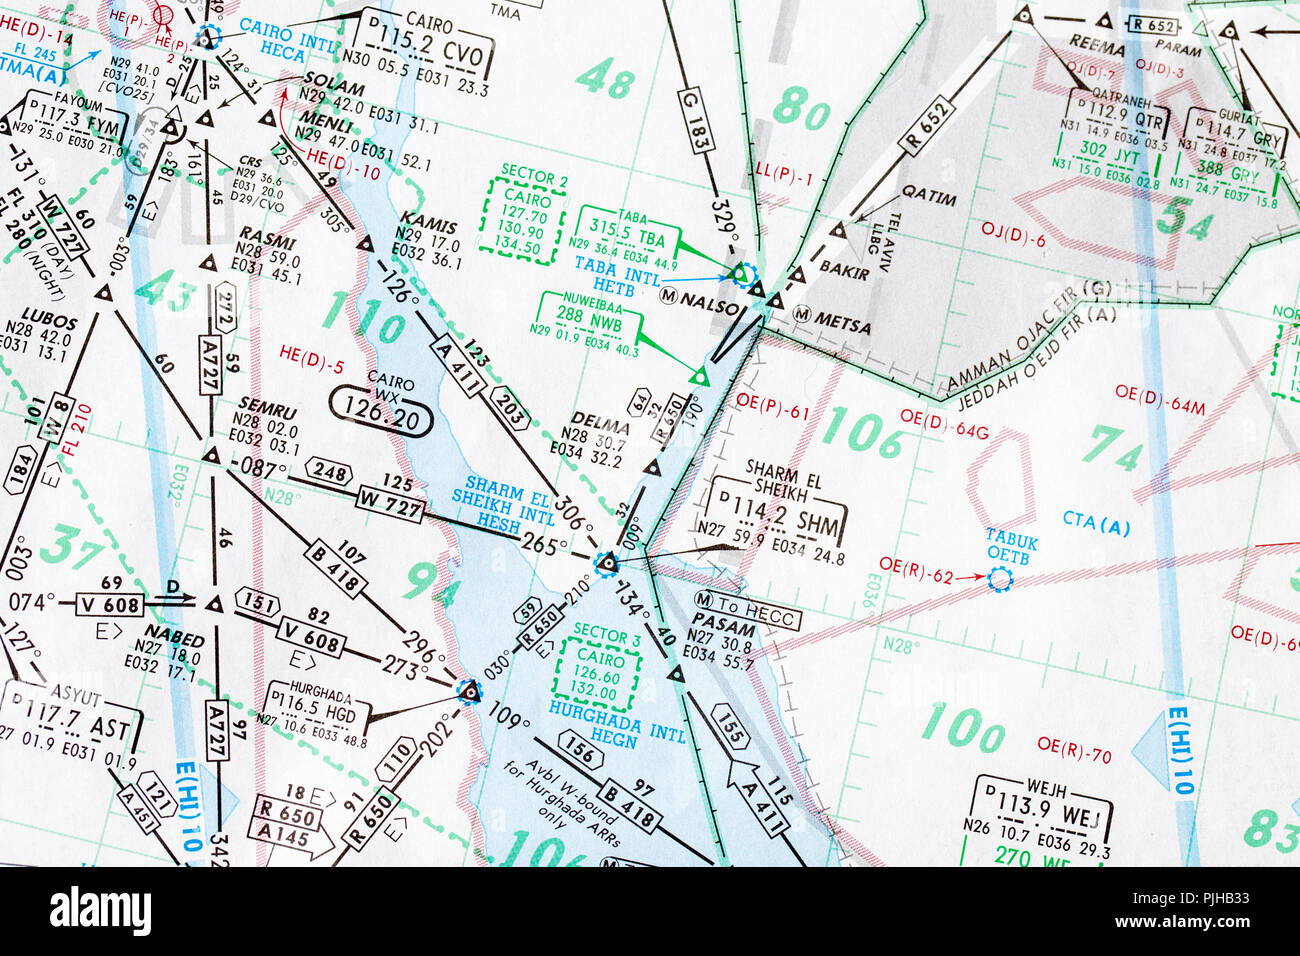 Flight Map Stock Photos & Flight Map Stock Images - Alamy